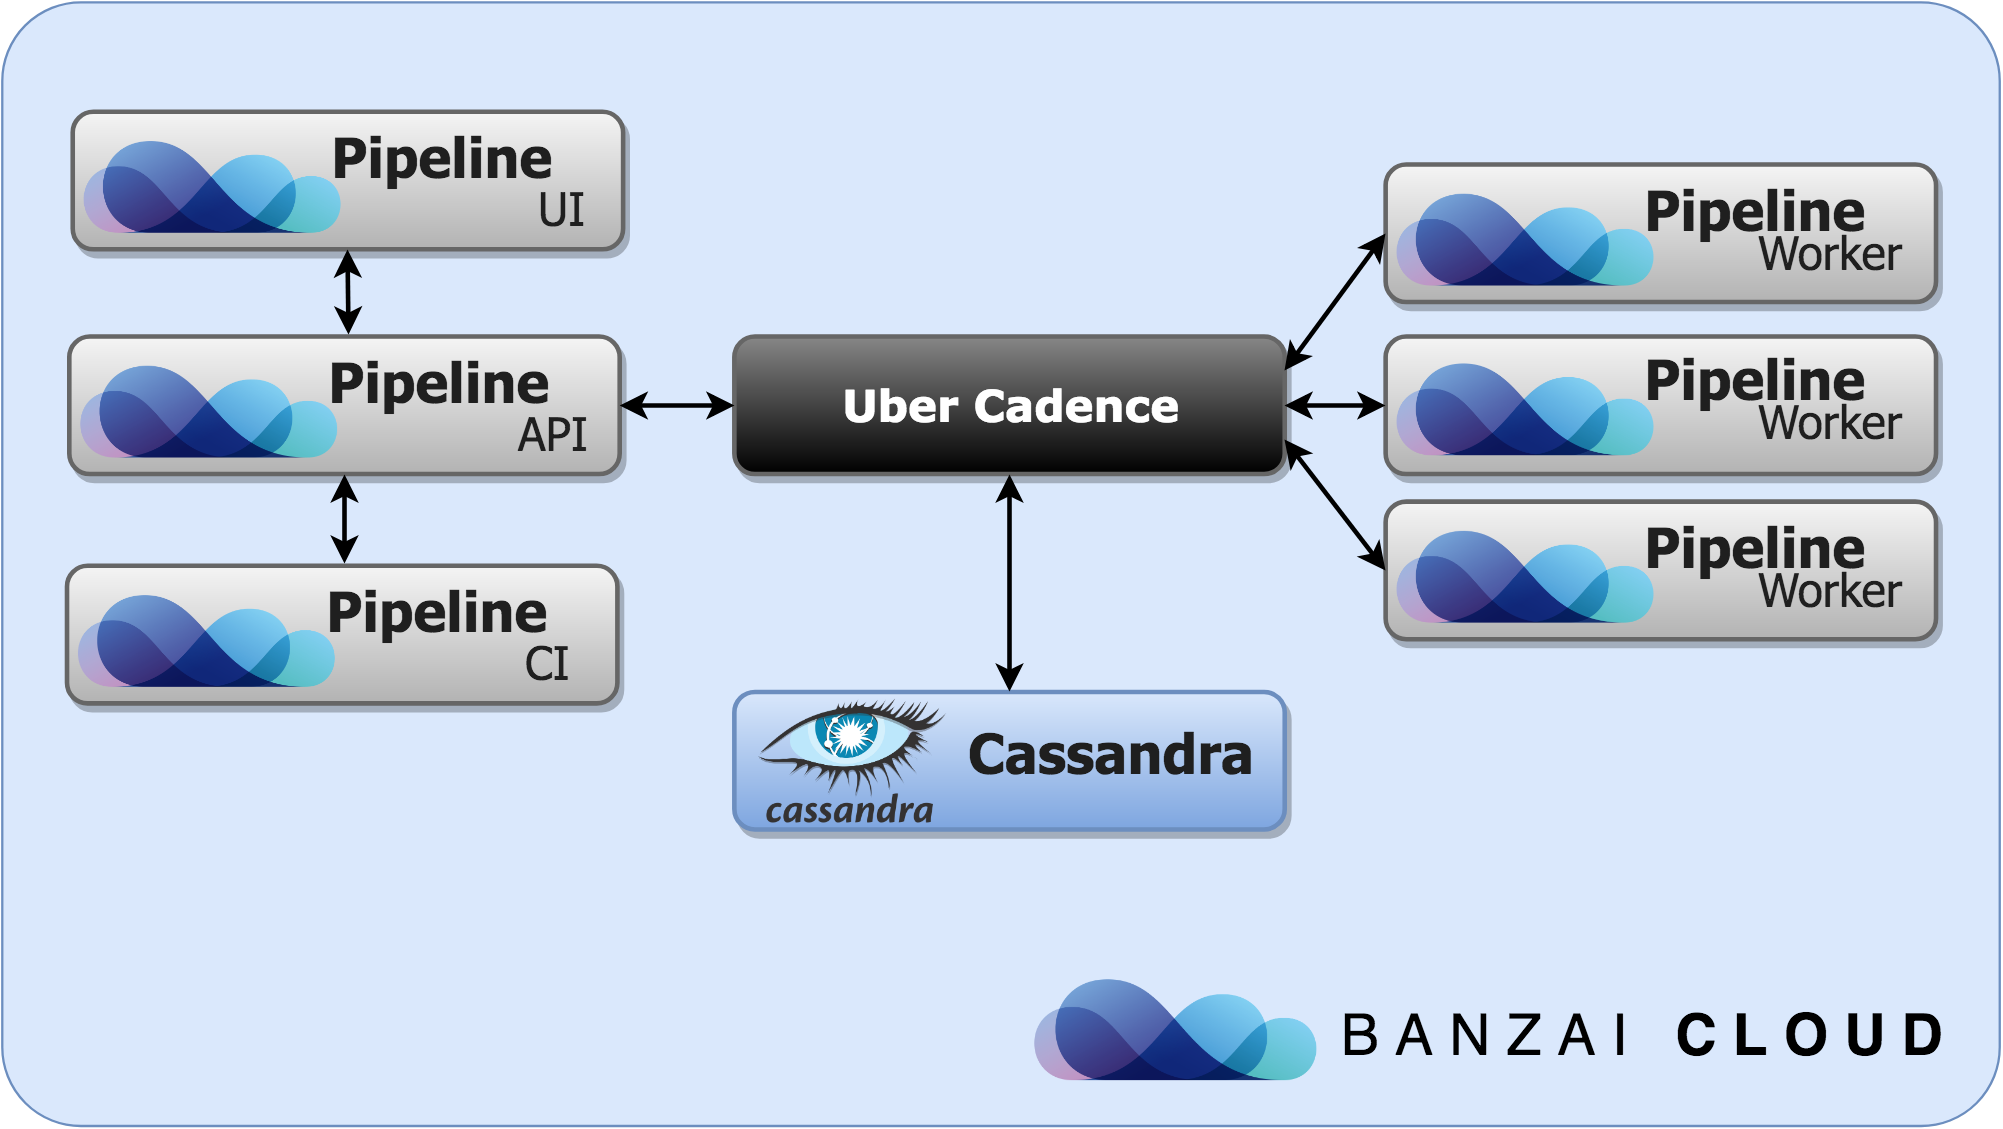 Cadence used by the Banzai Cloud Pipeline Platform